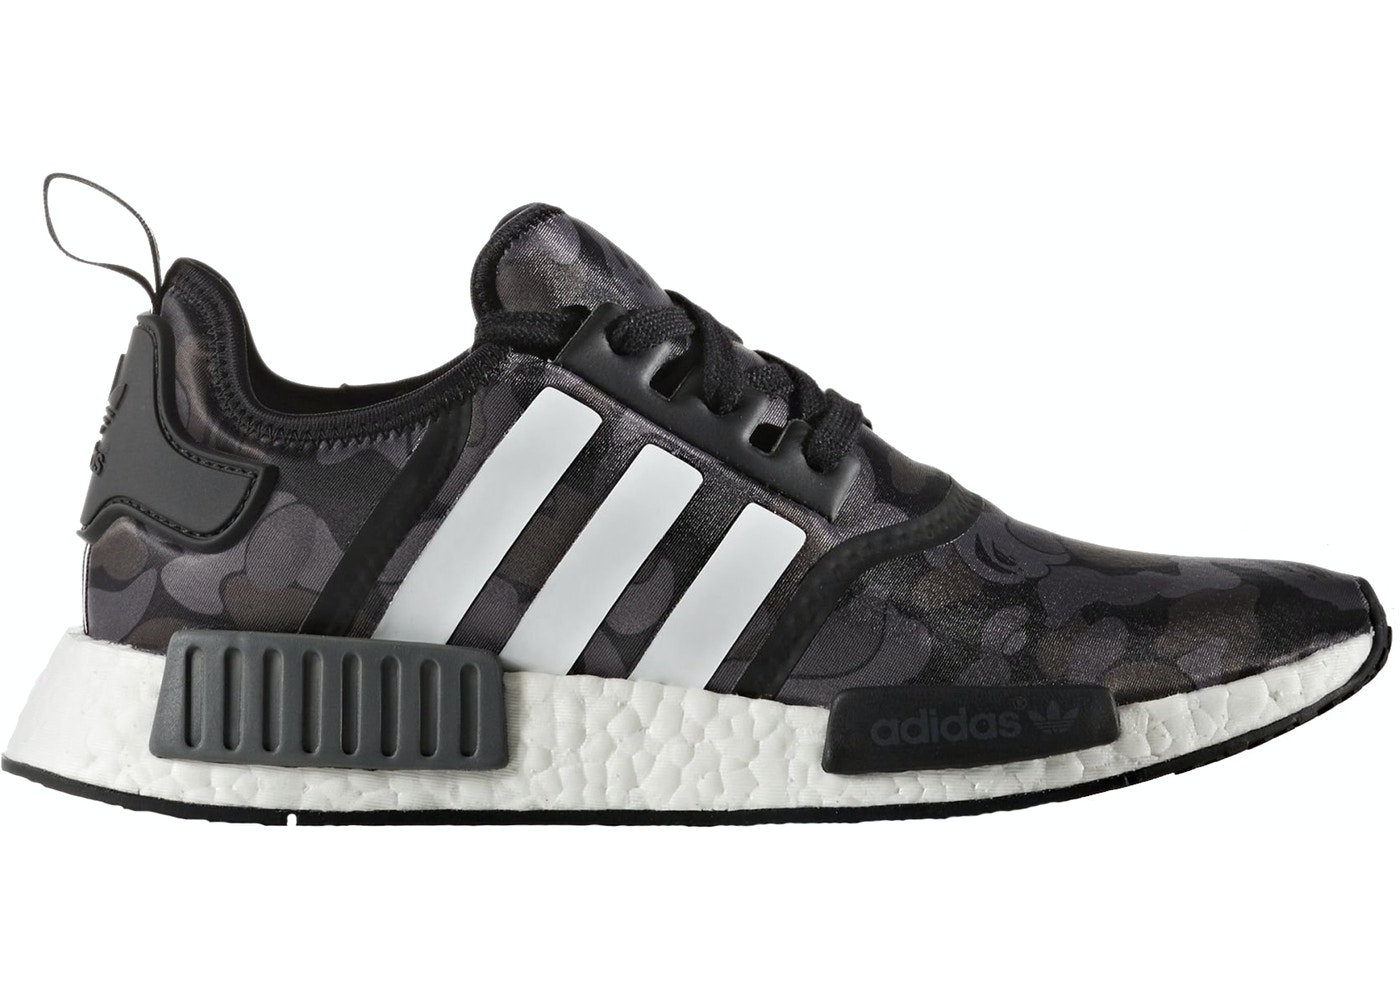 new product 91081 39882 adidas NMD R1 Bape Black Camo